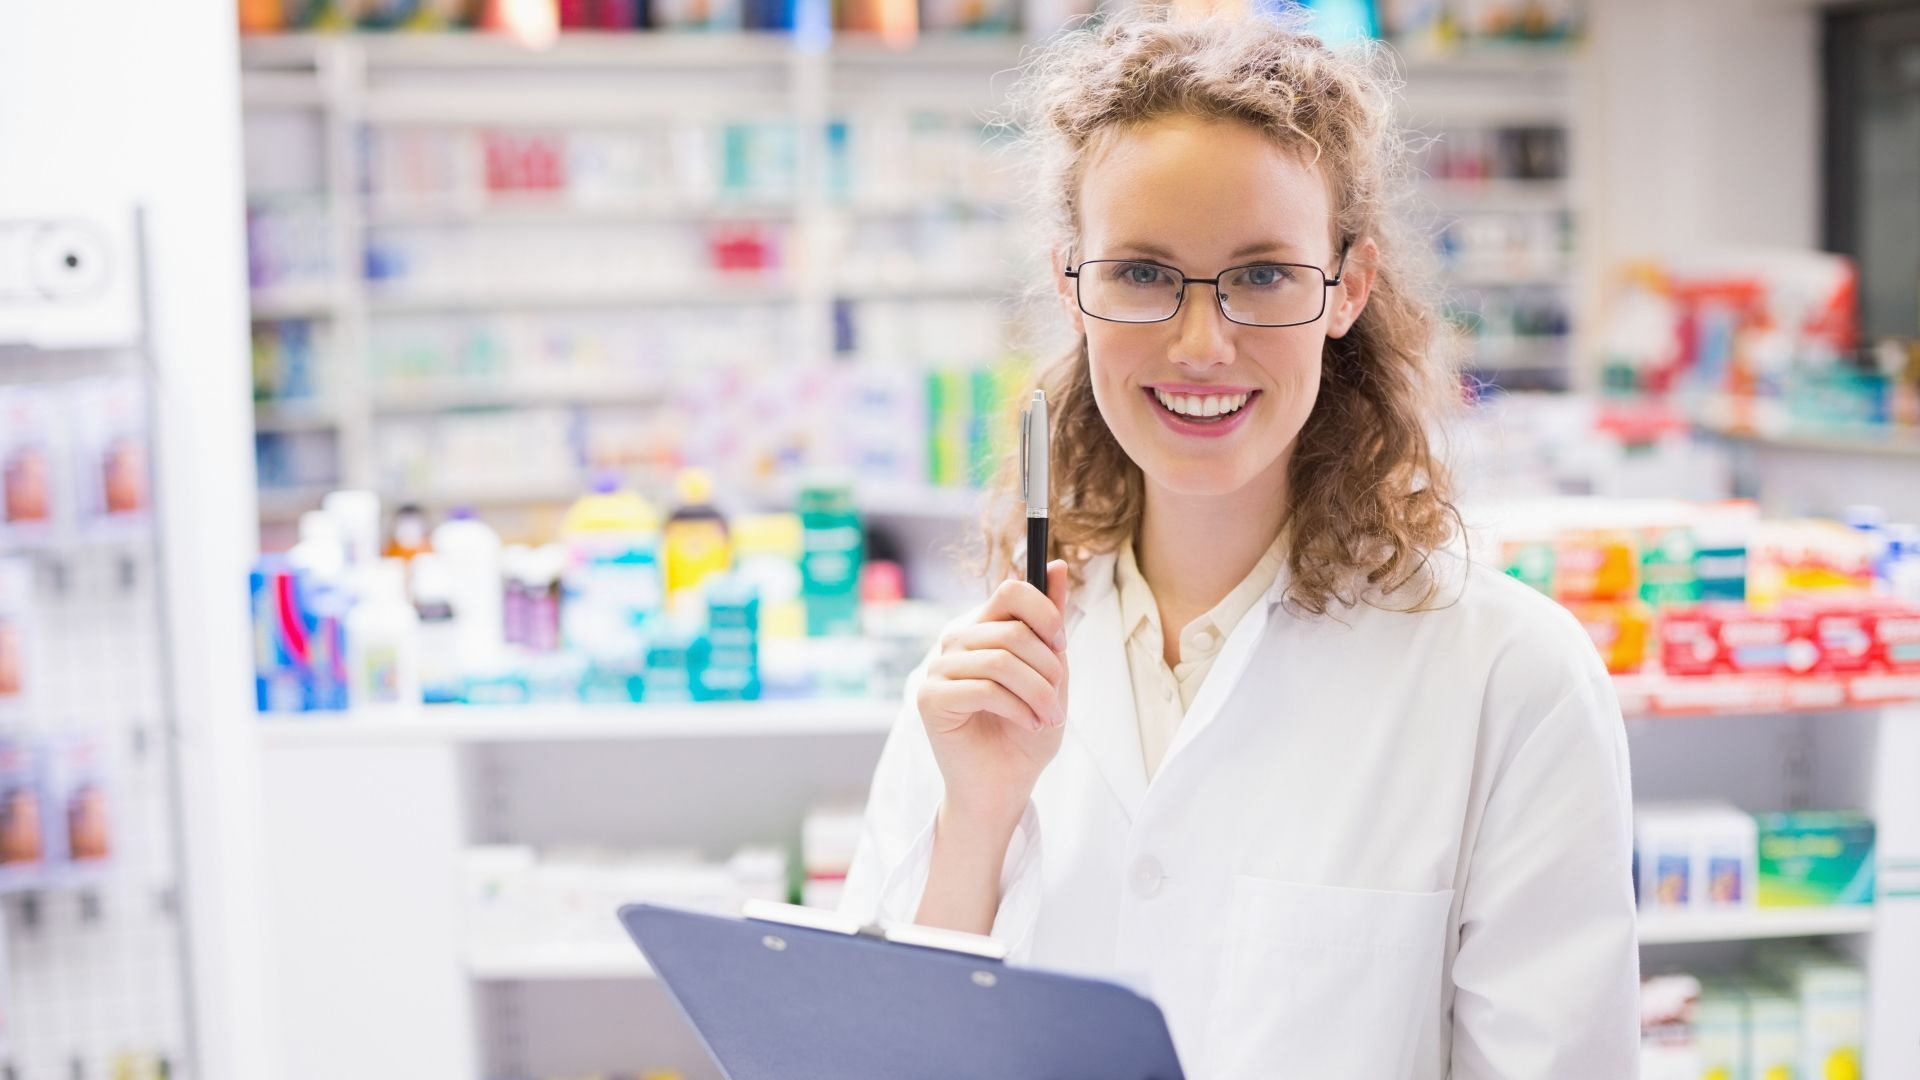 Smiling pharmacist with glasses and clipboard